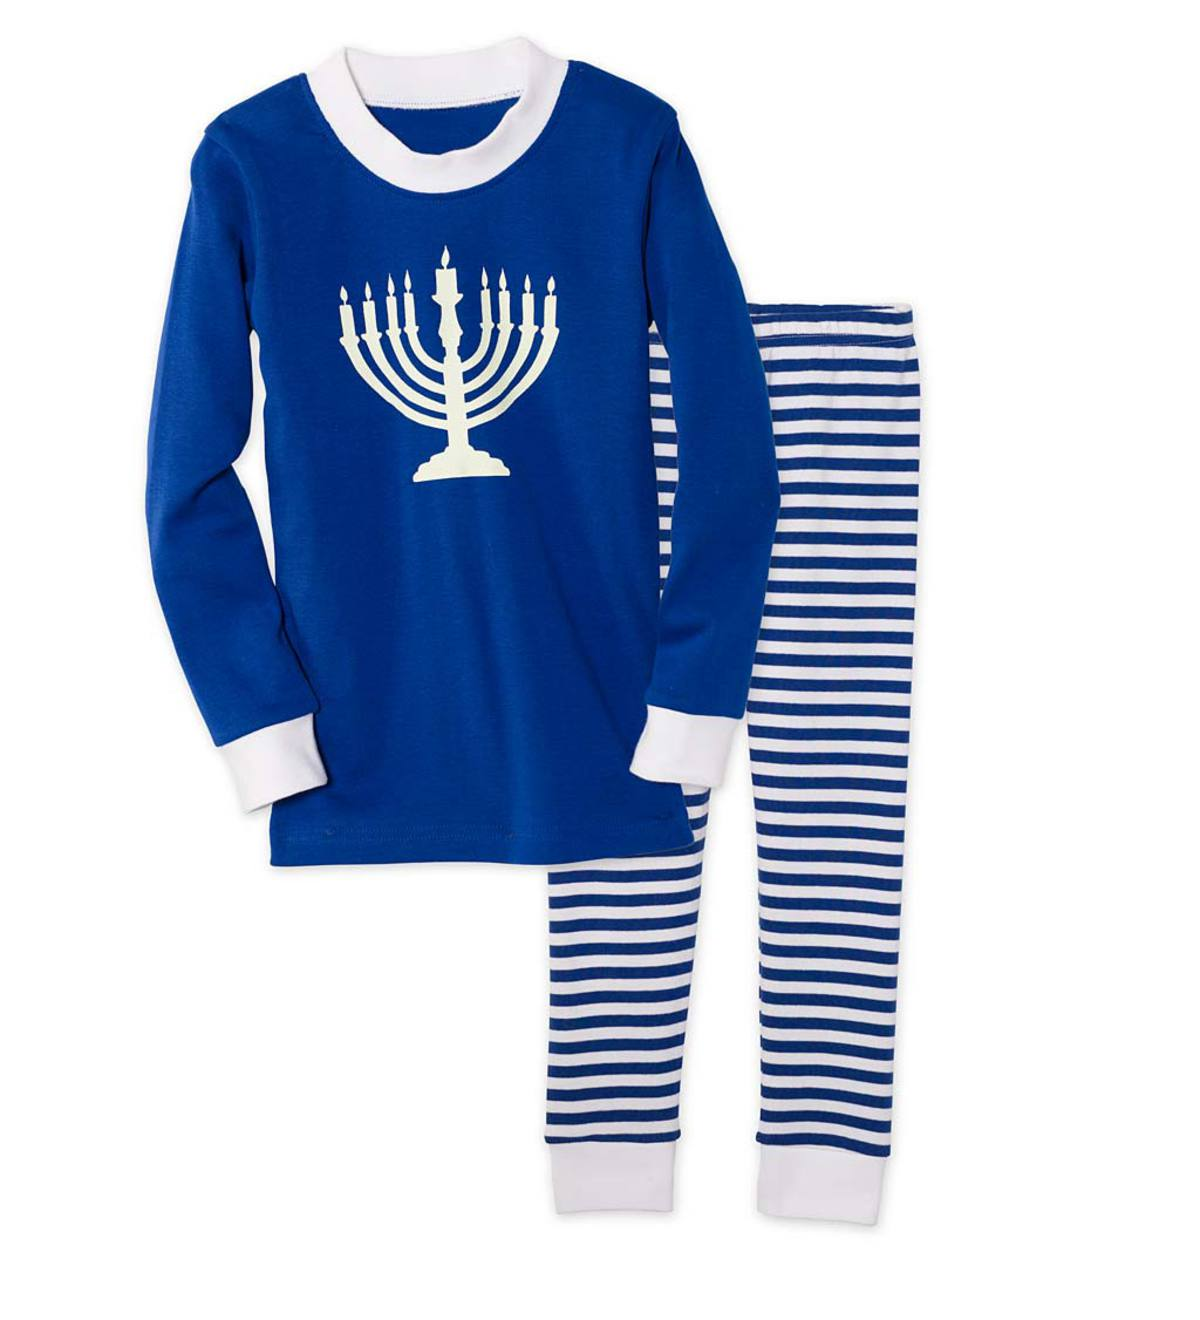 Glow-in-the-Dark Hanukkah Pajamas - Blue - 5